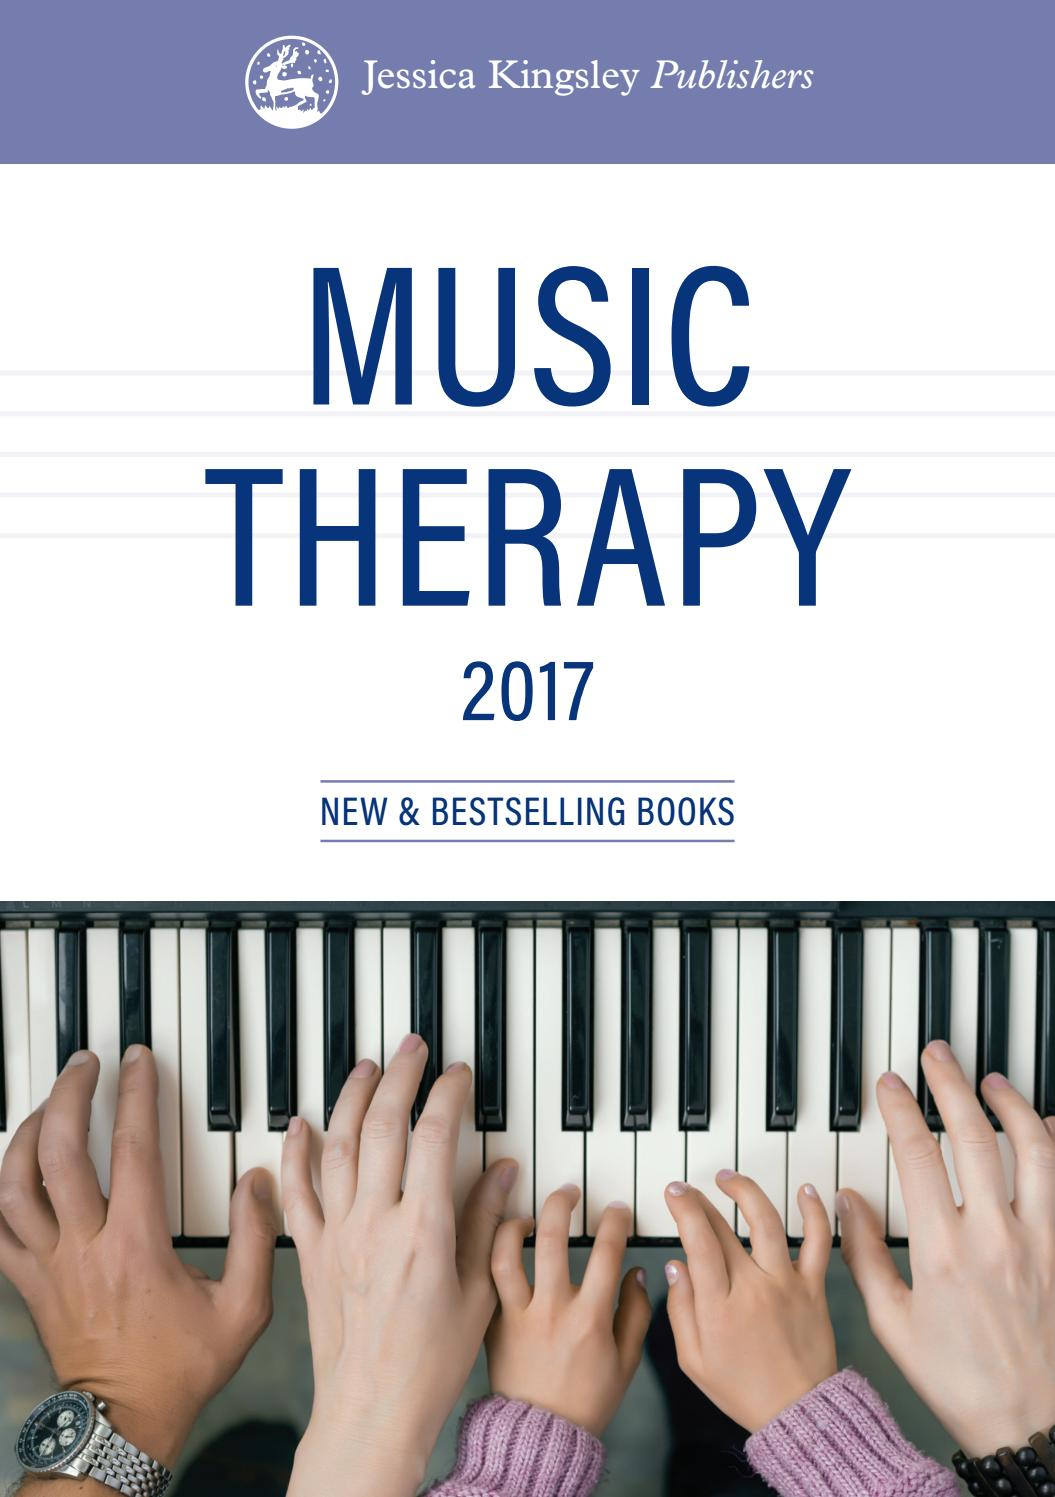 Jessica Kingsley Publishers: Music Therapy Catalogue 2017 by Jessica  Kingsley Publishers - issuu